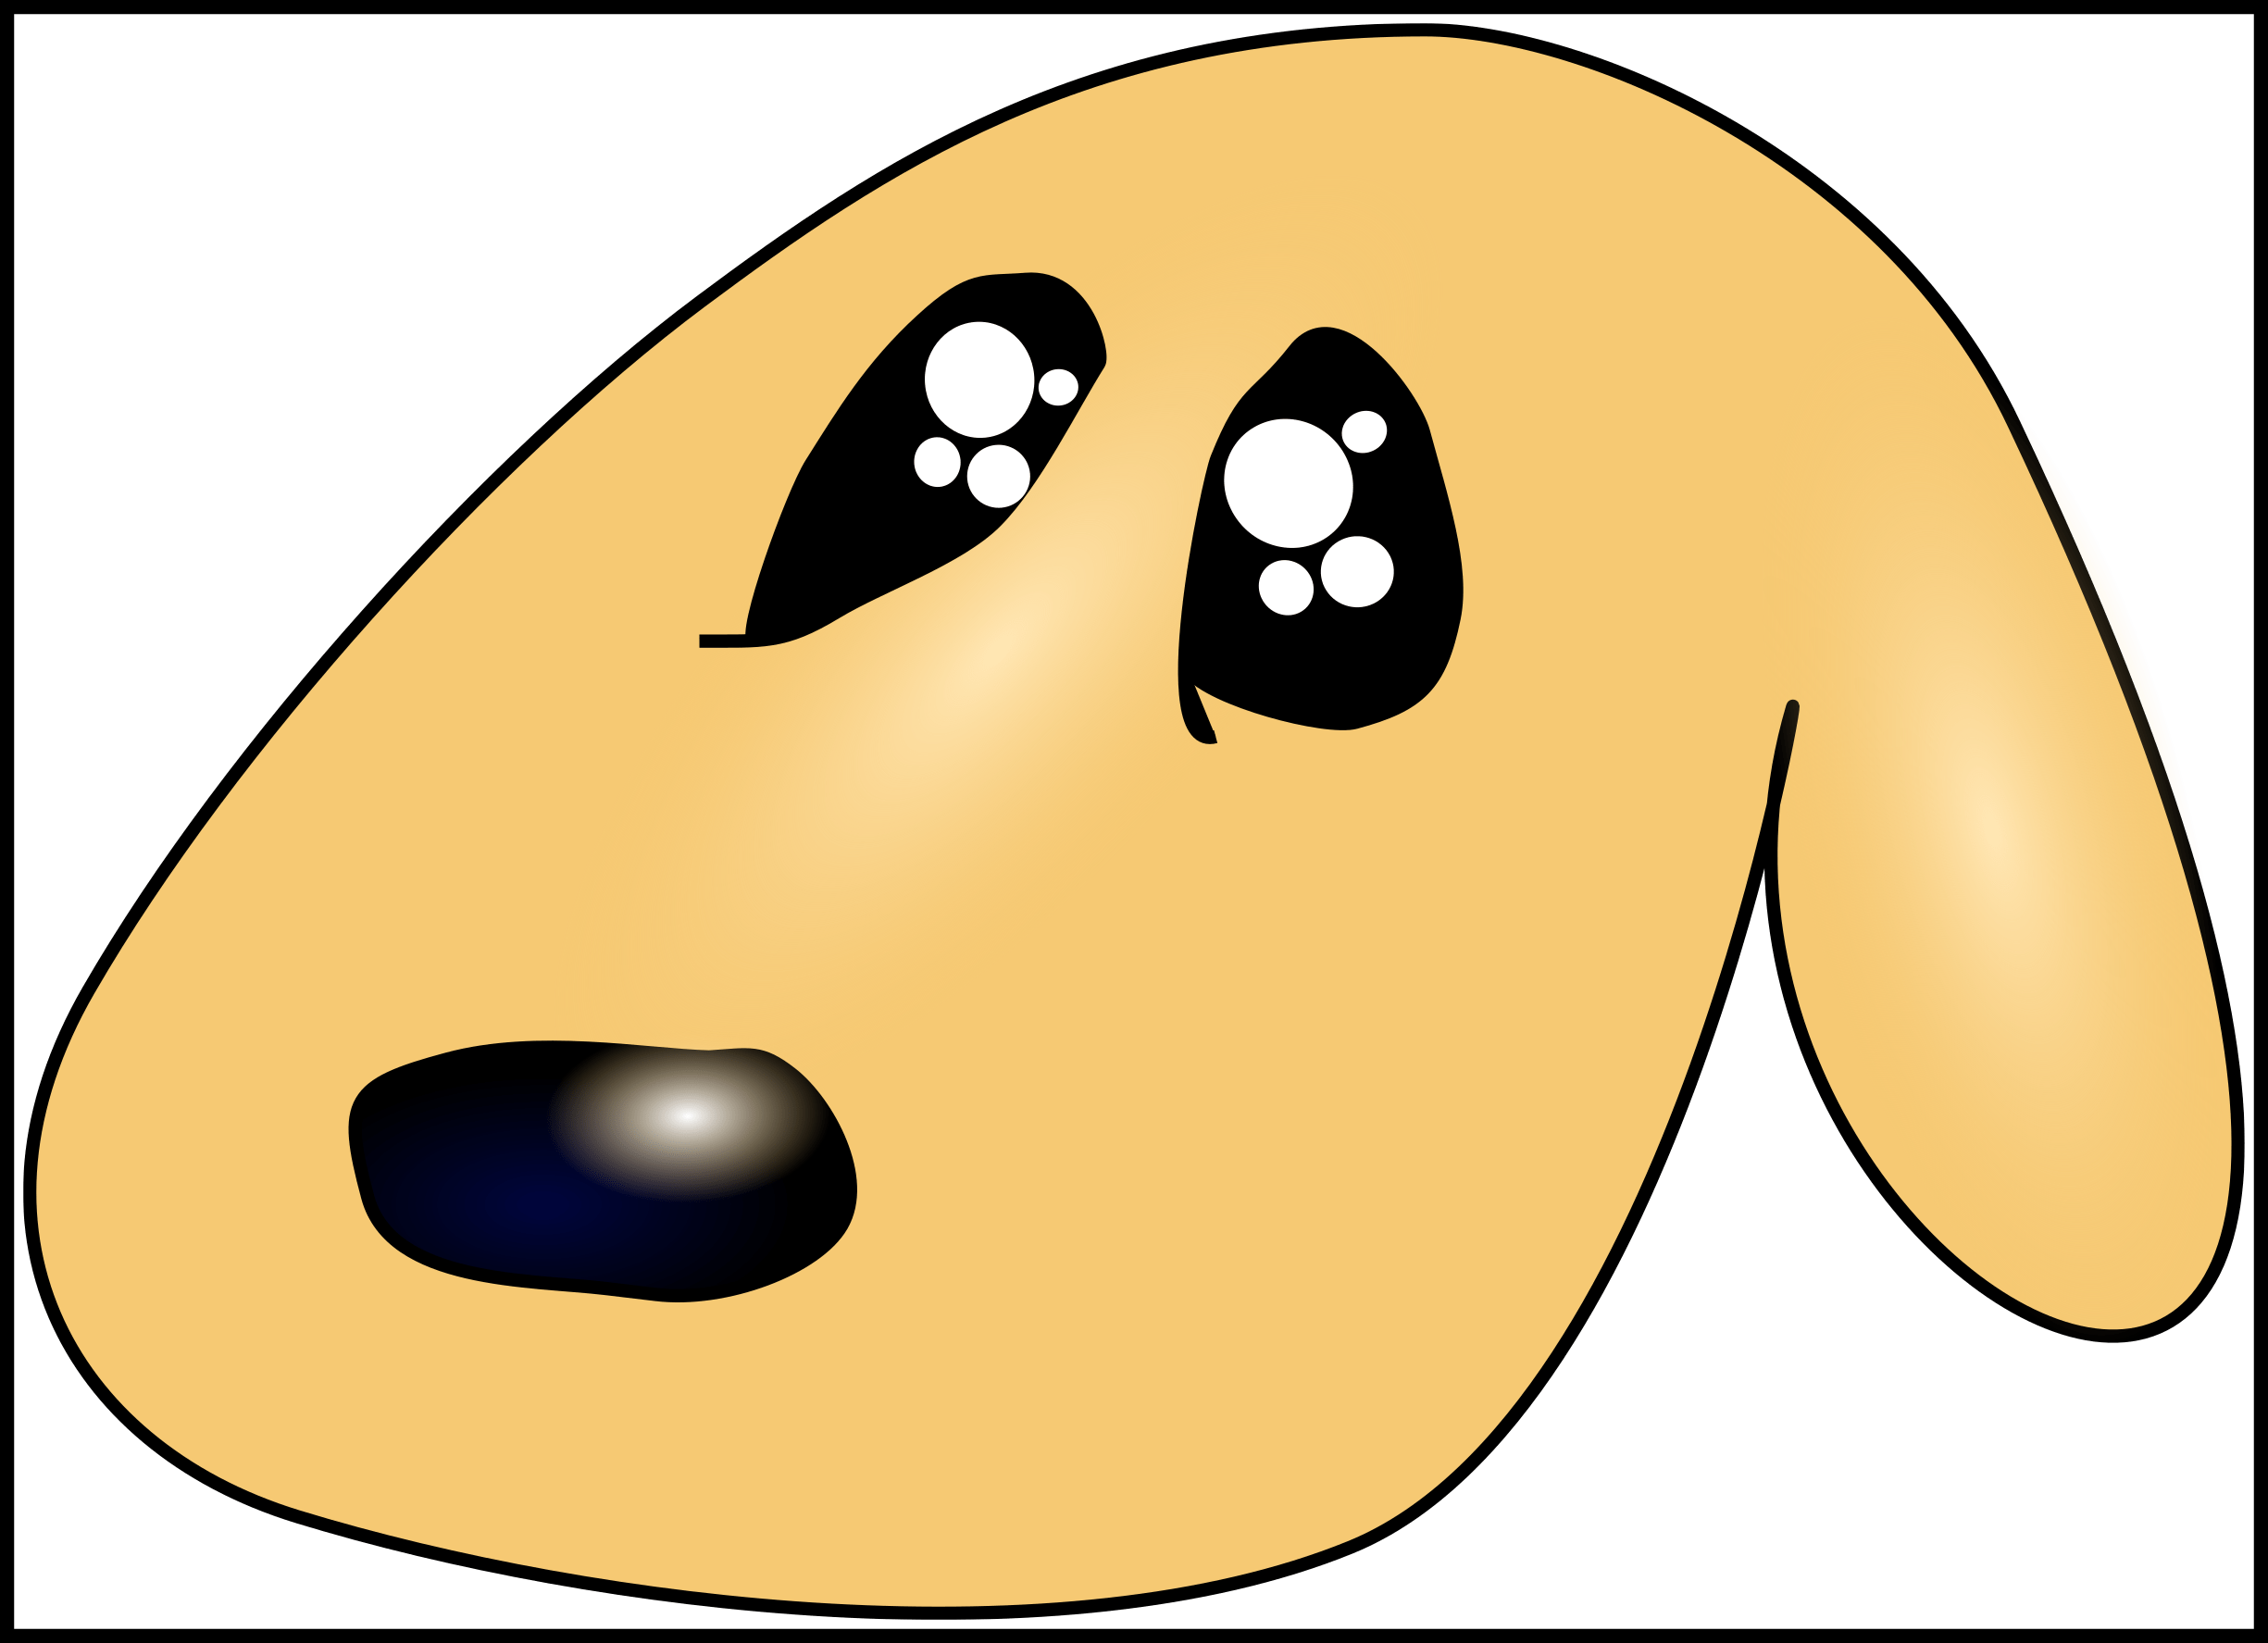 Awesome Illustration Of Poor Hungry Dog Cartoon Pict Sad And ... clip art black and white download